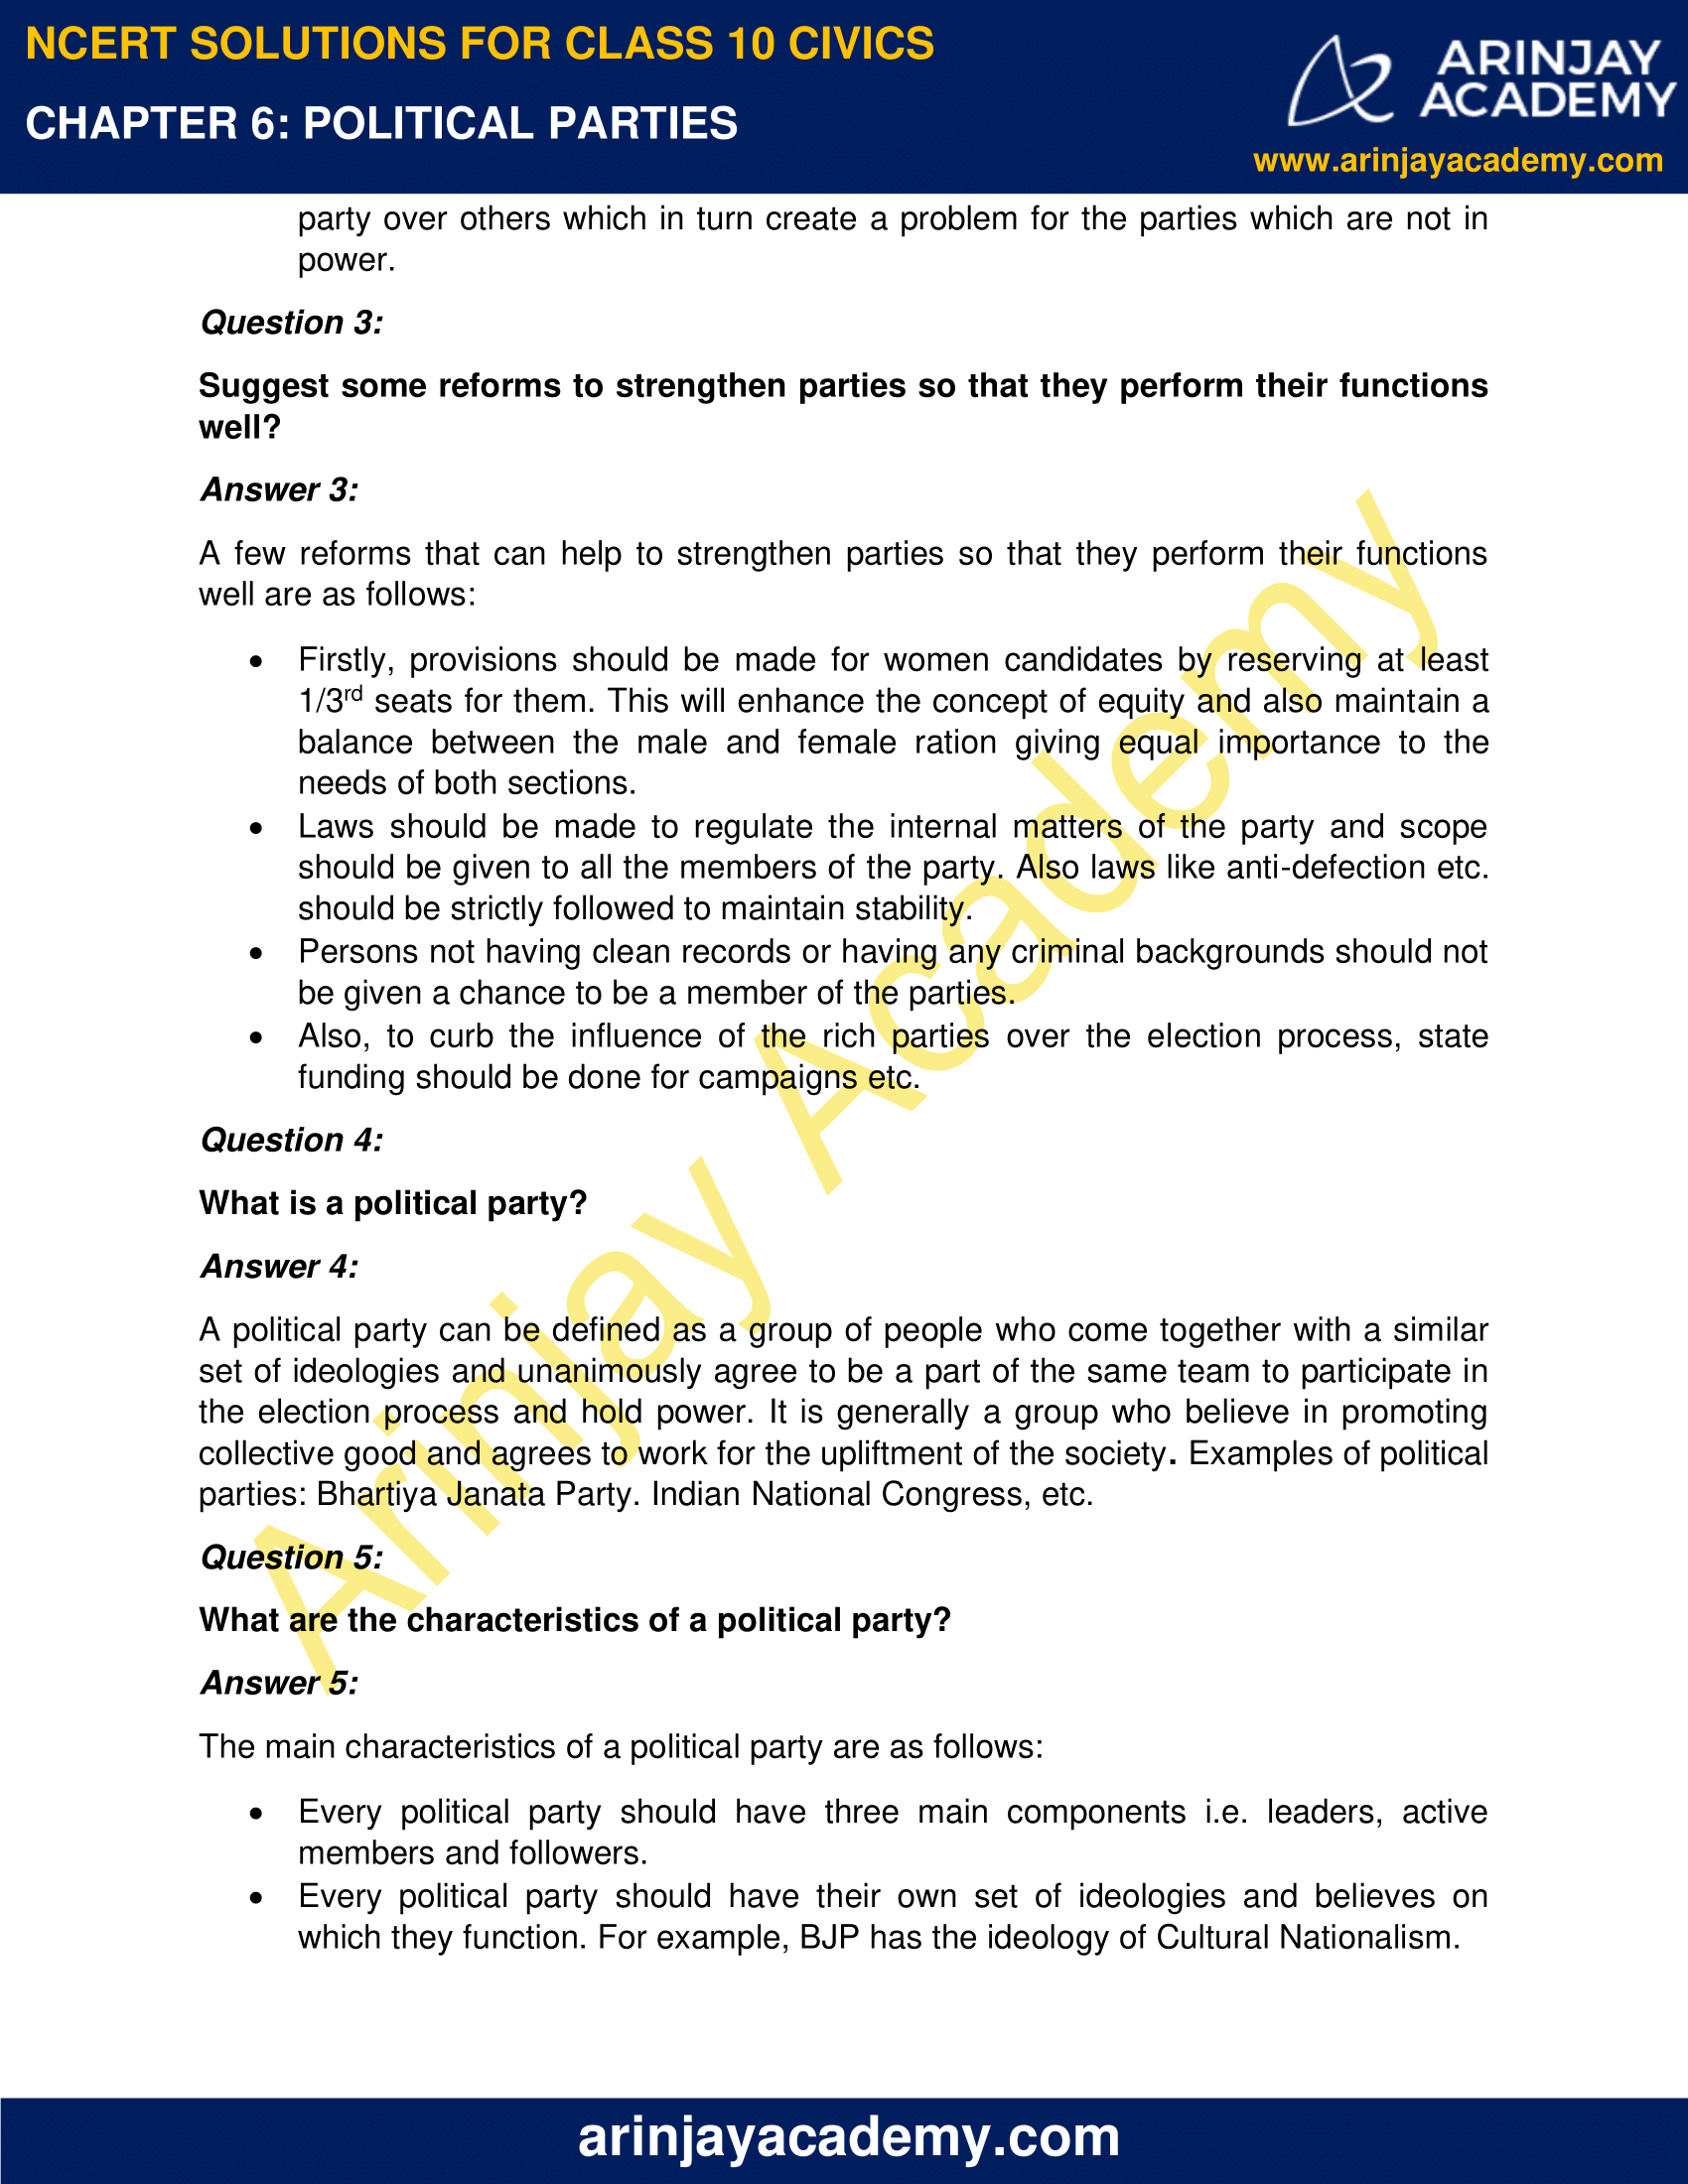 NCERT Solutions for Class 10 Civics Chapter 6 Political Parties image 2